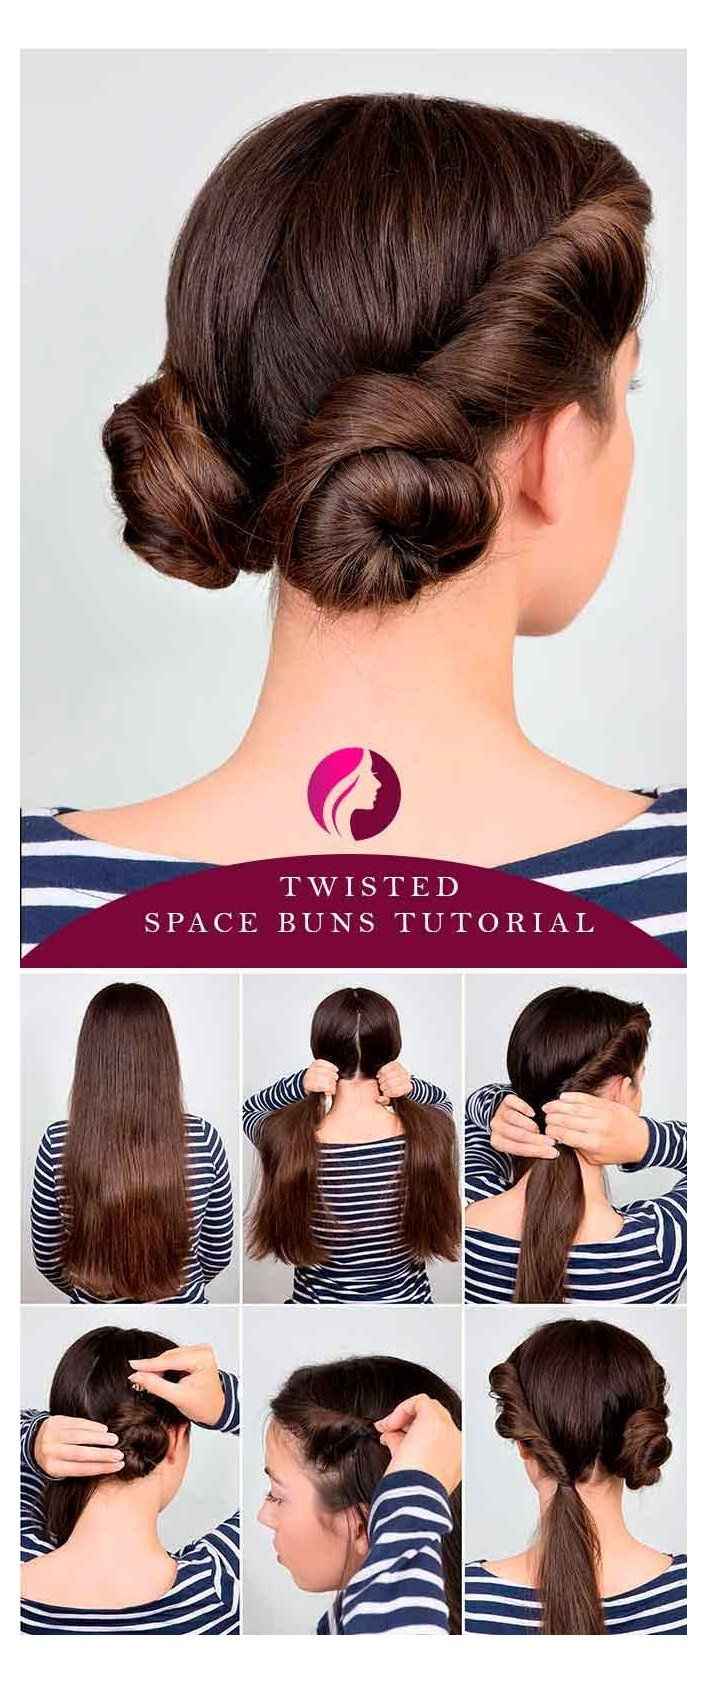 18 Easy Hairstyles for Long Hair   Make New Look easy ...